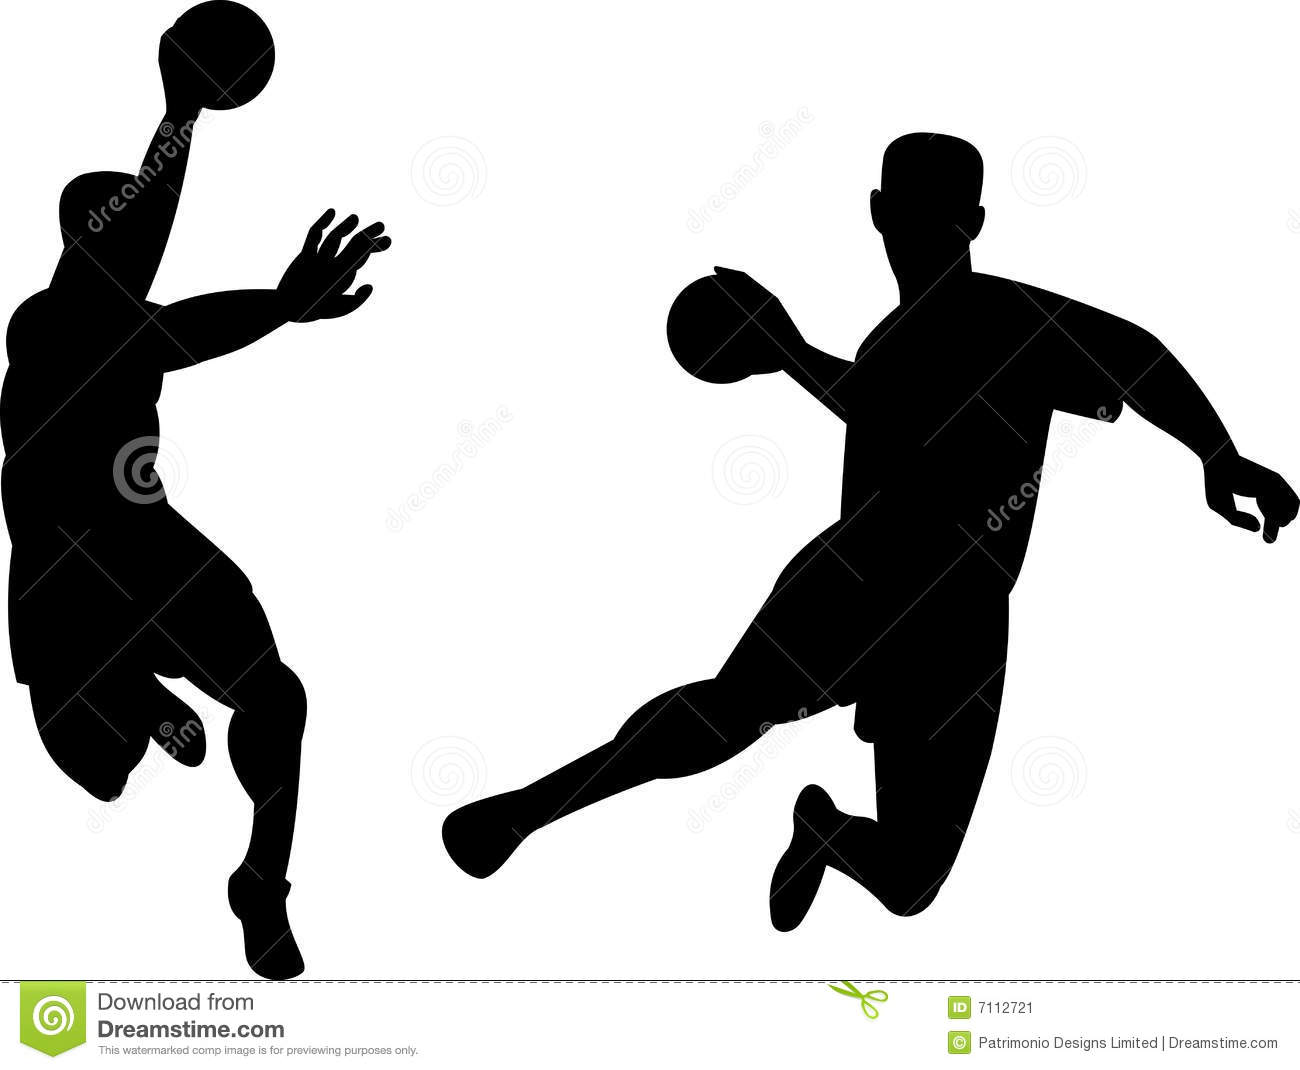 Vector art on the sport of handball isolated on white background.